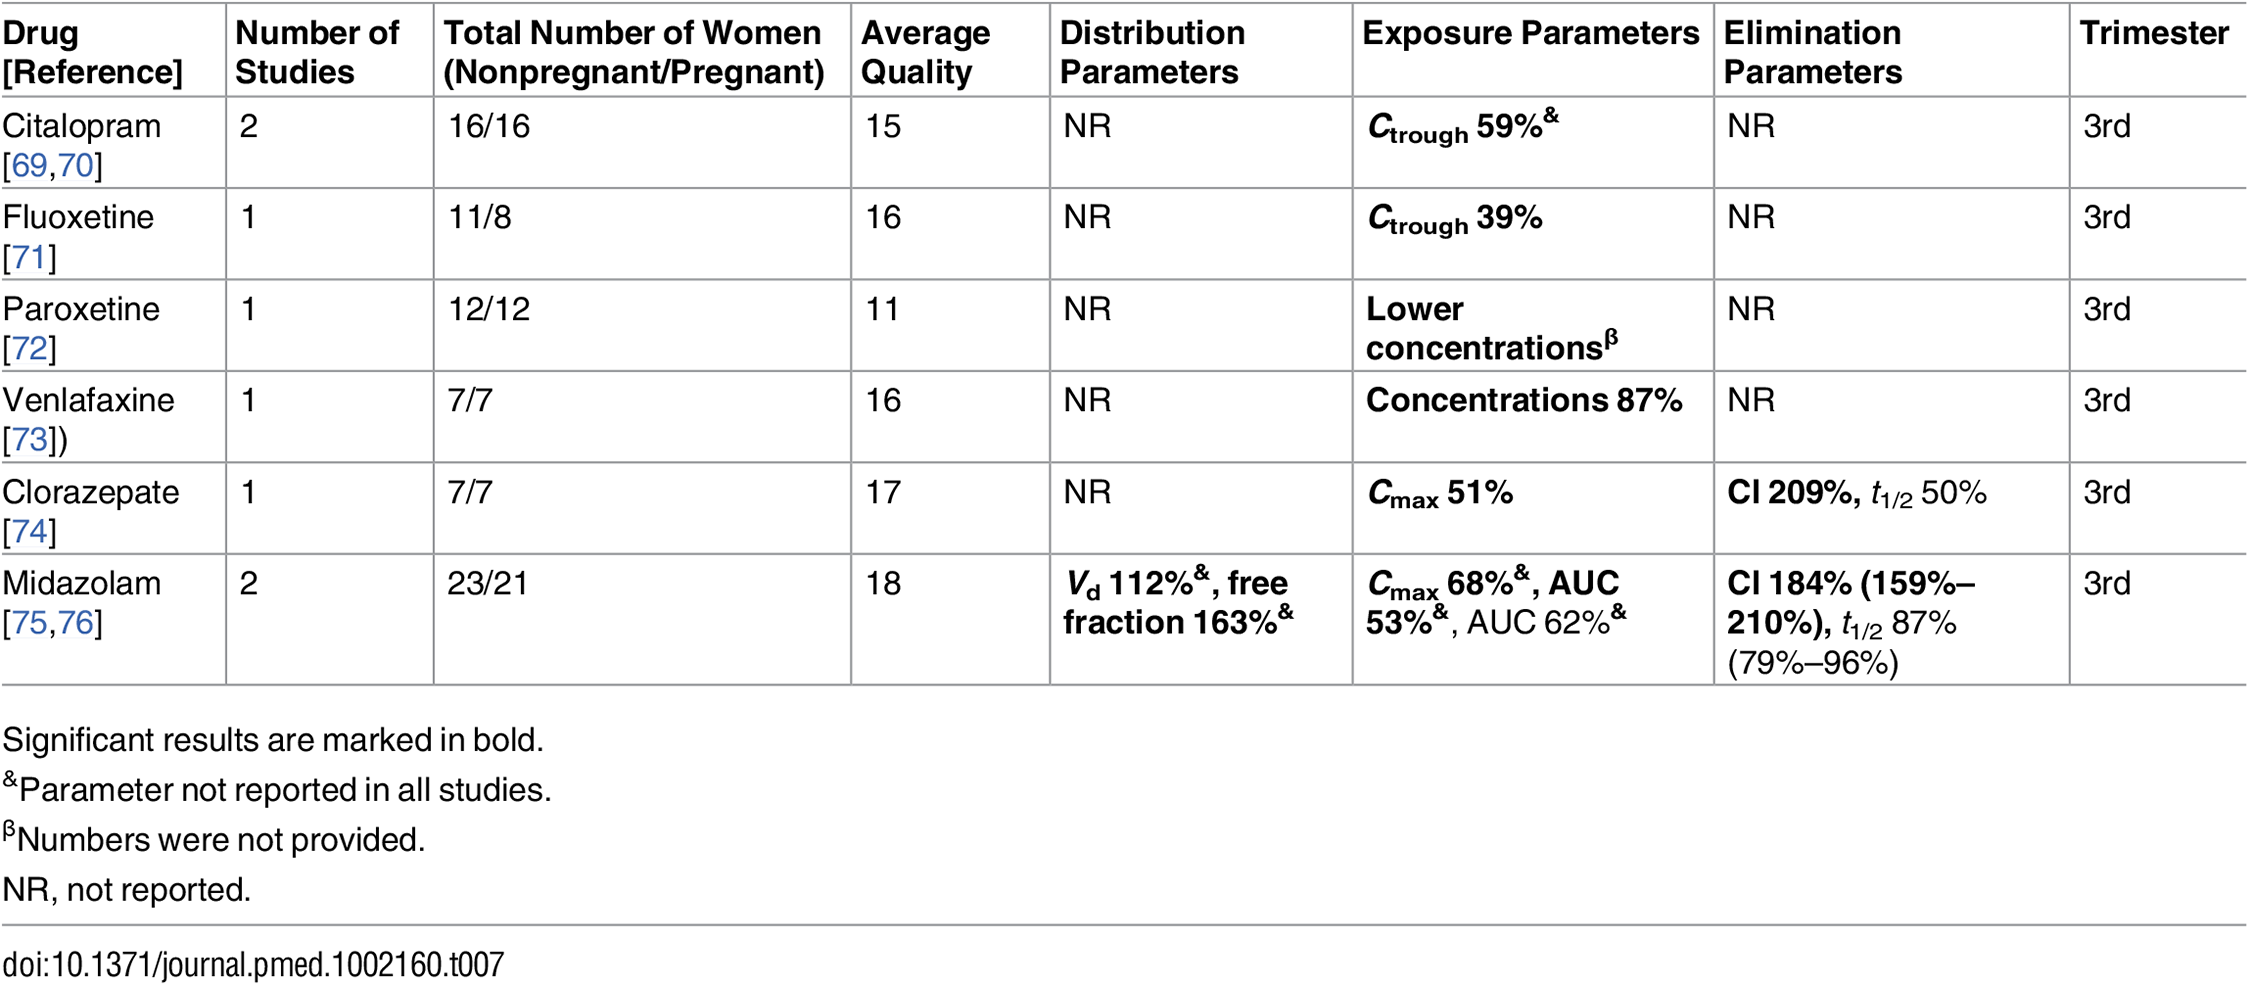 Antidepressant/anxiolytic drugs: consistent/single studies of pregnancy associated pharmacokinetic changes (percent calculated as pregnant/nonpregnant values).